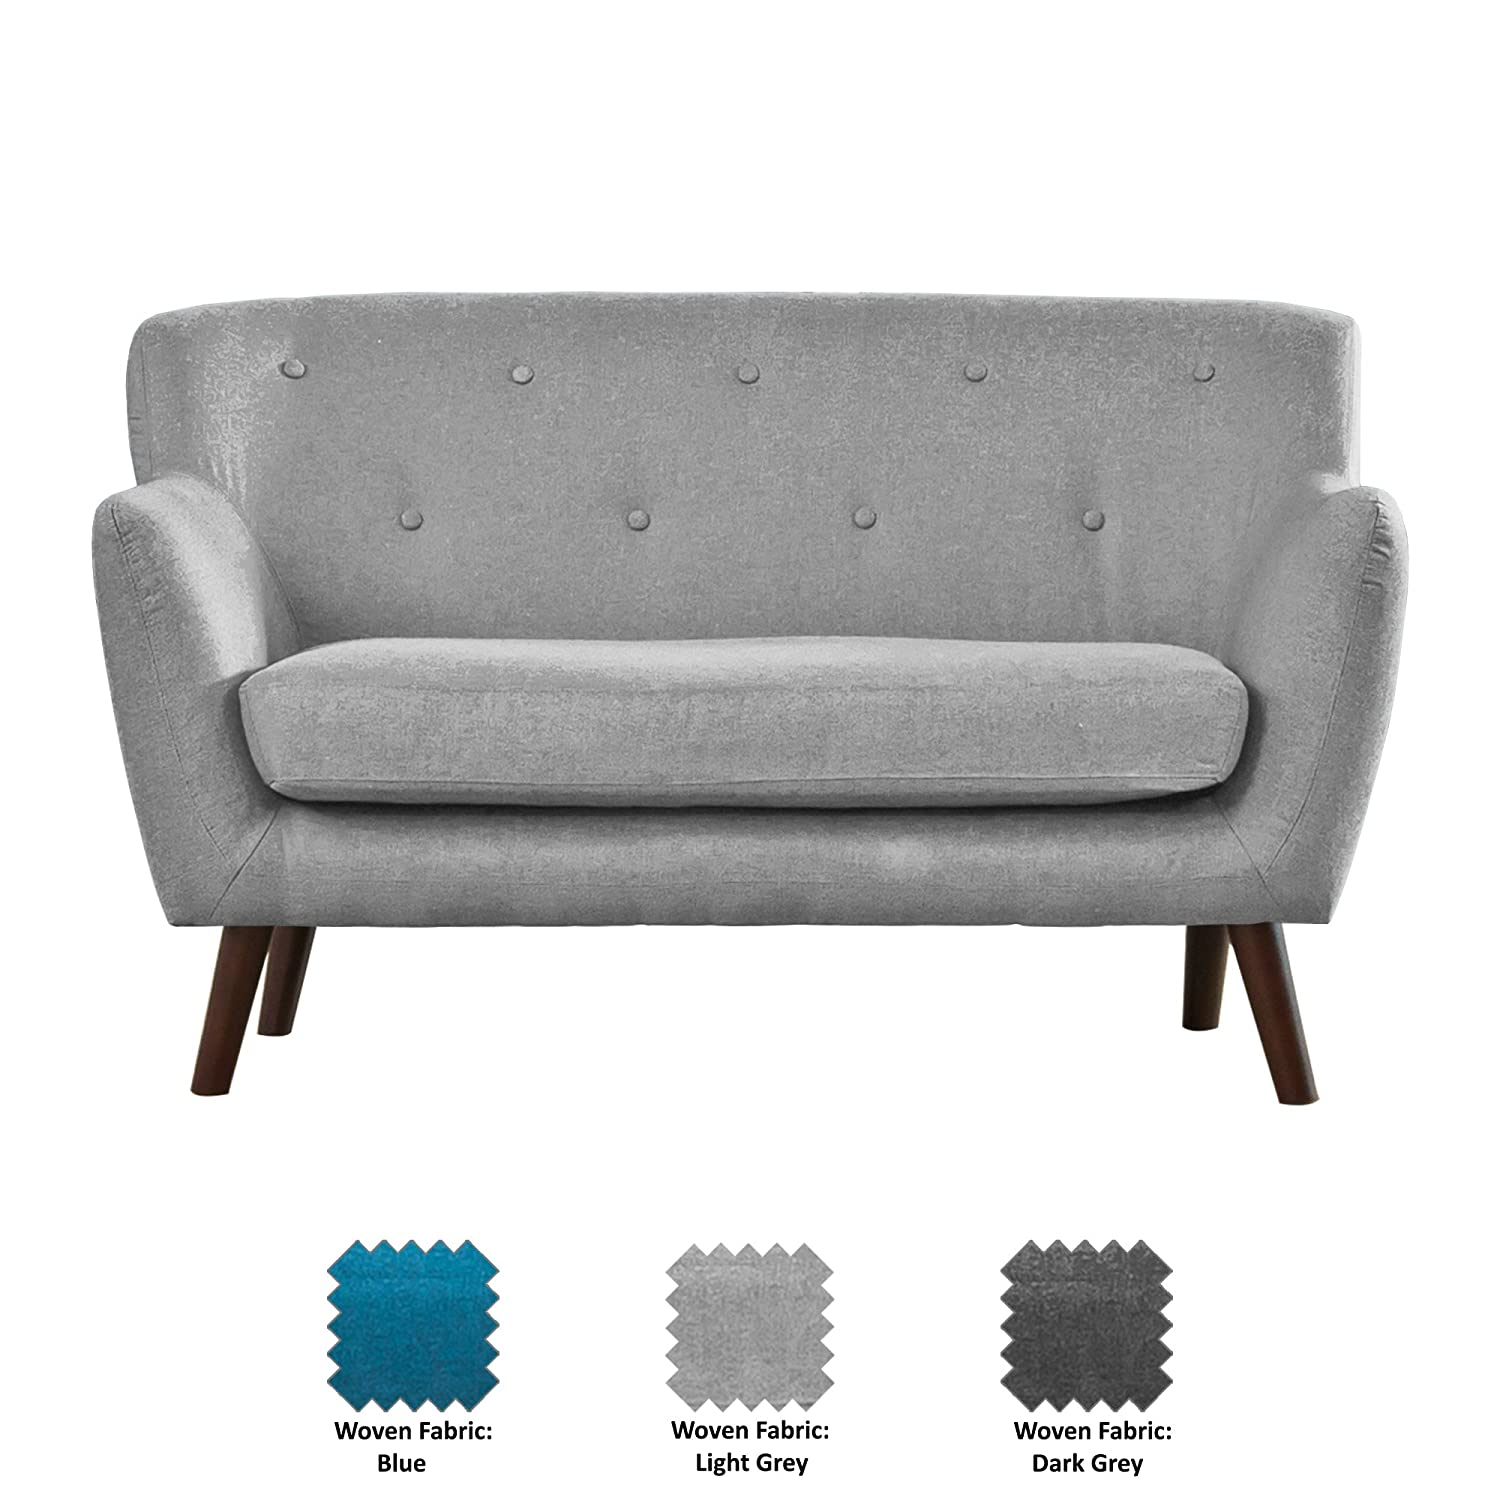 Nashville Woven Fabric Sofa Suite - 1/2/3/3+2 Seat in Teal/Dark Grey/Light Grey (Dark Grey, 1 Seat) Sofa-Collection